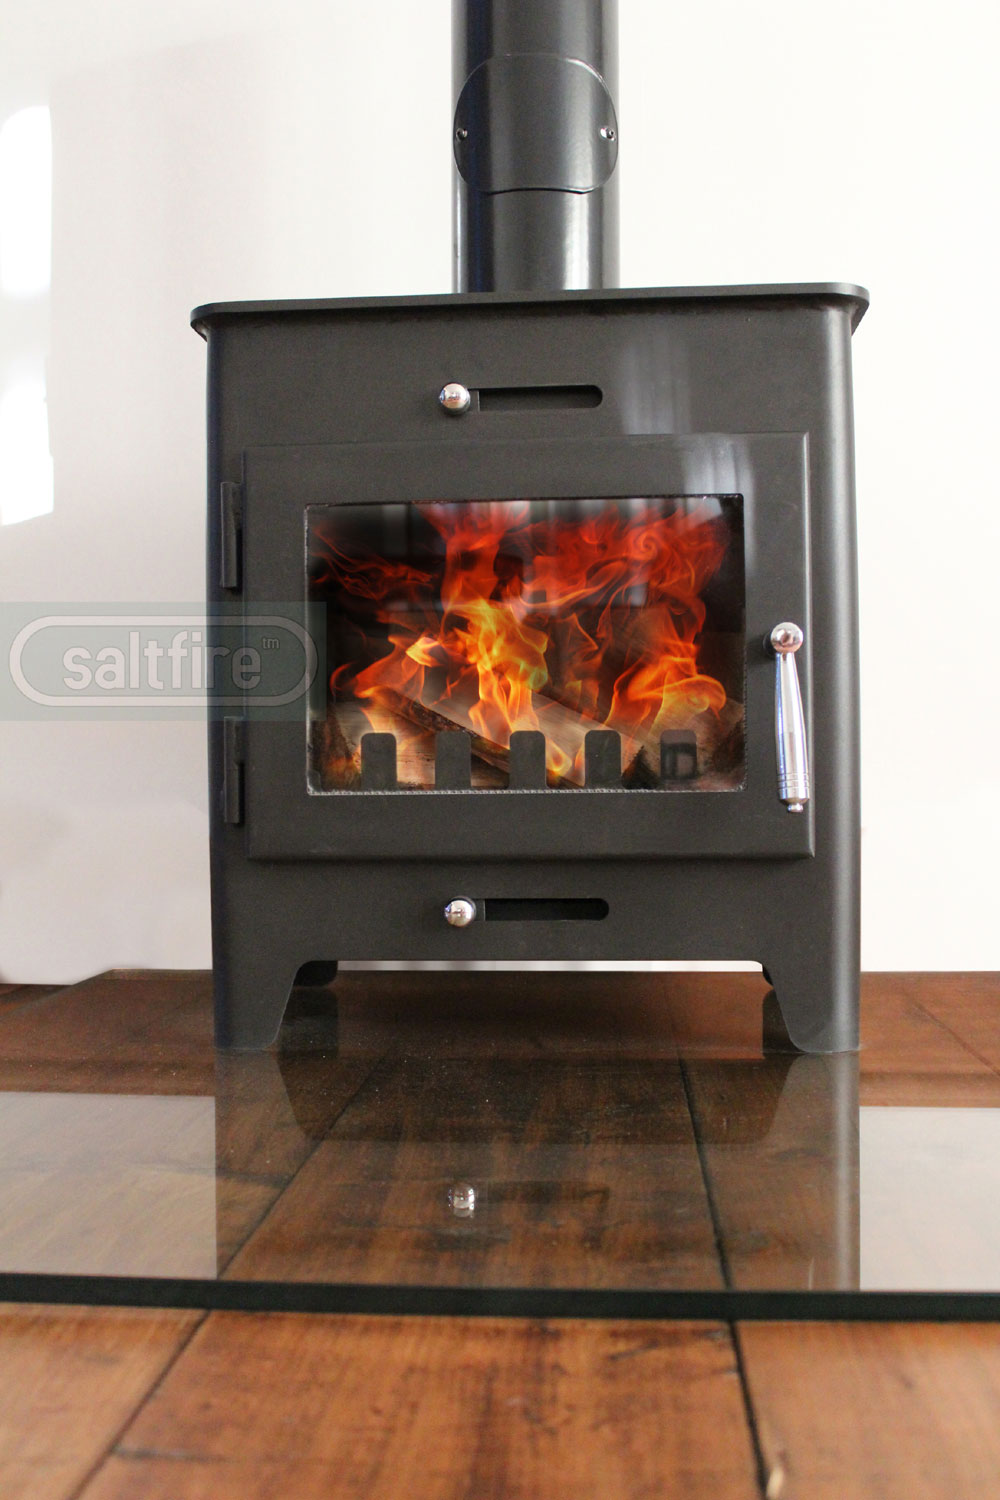 St1 Stove Ecodesign Stoves Woodburning Stoves